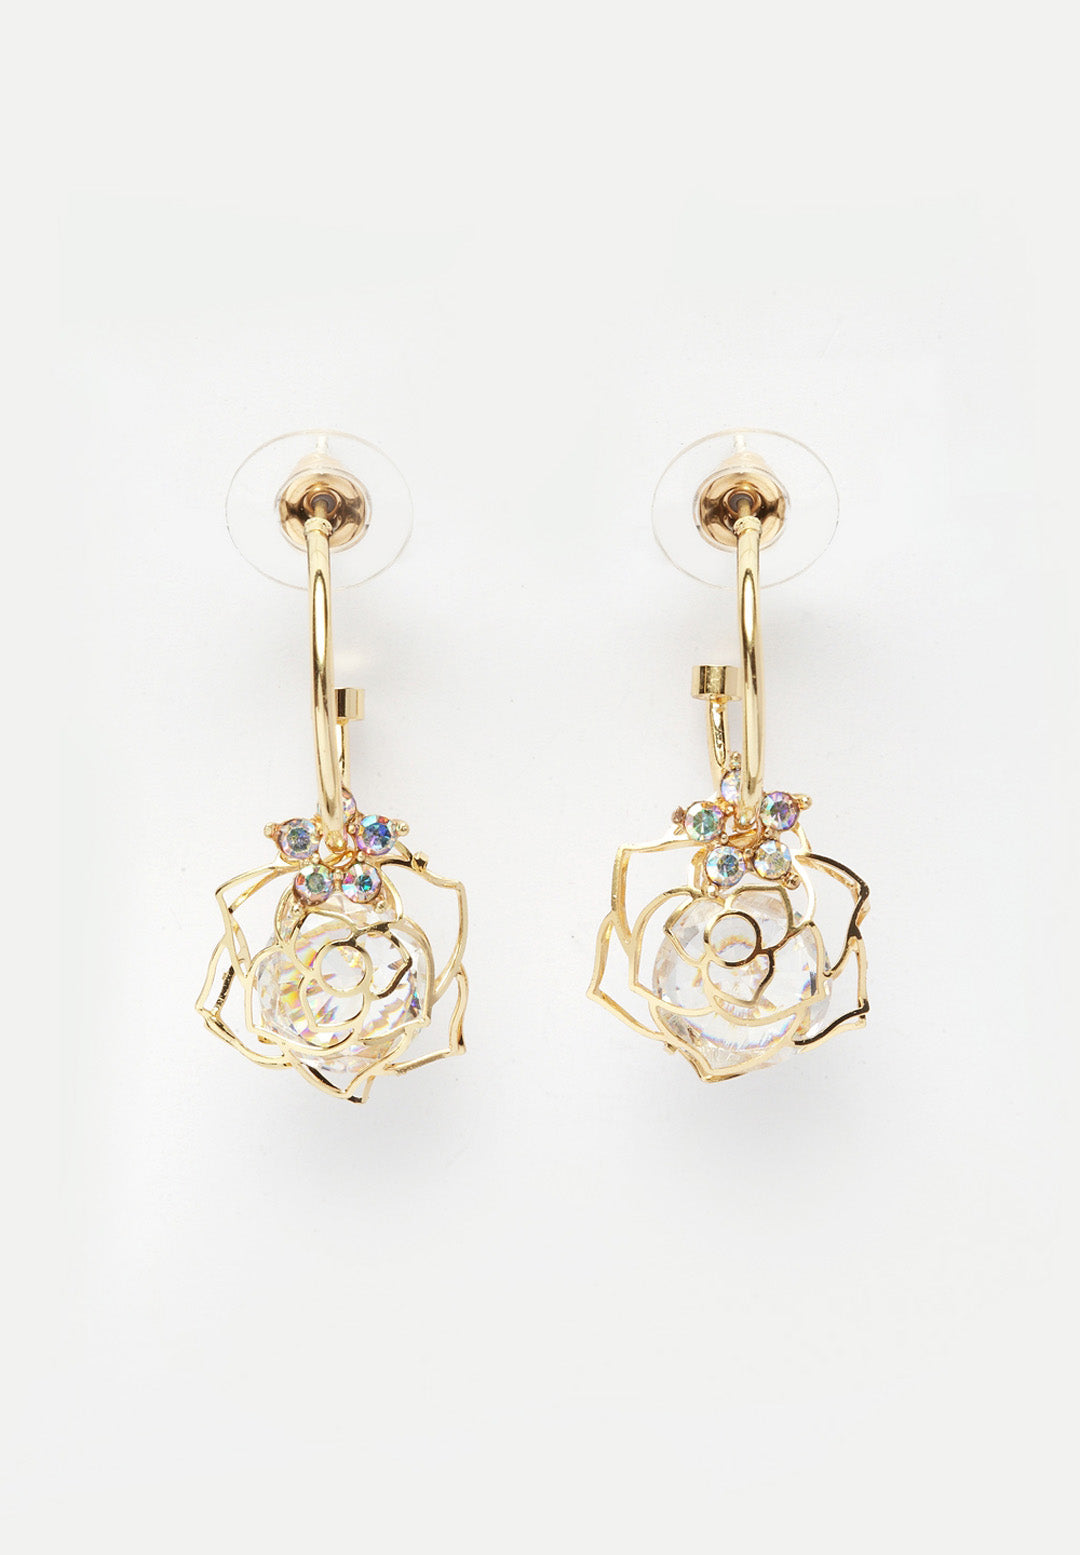 Avant-Garde Paris Sleek Gold-Plated Rose Earrings